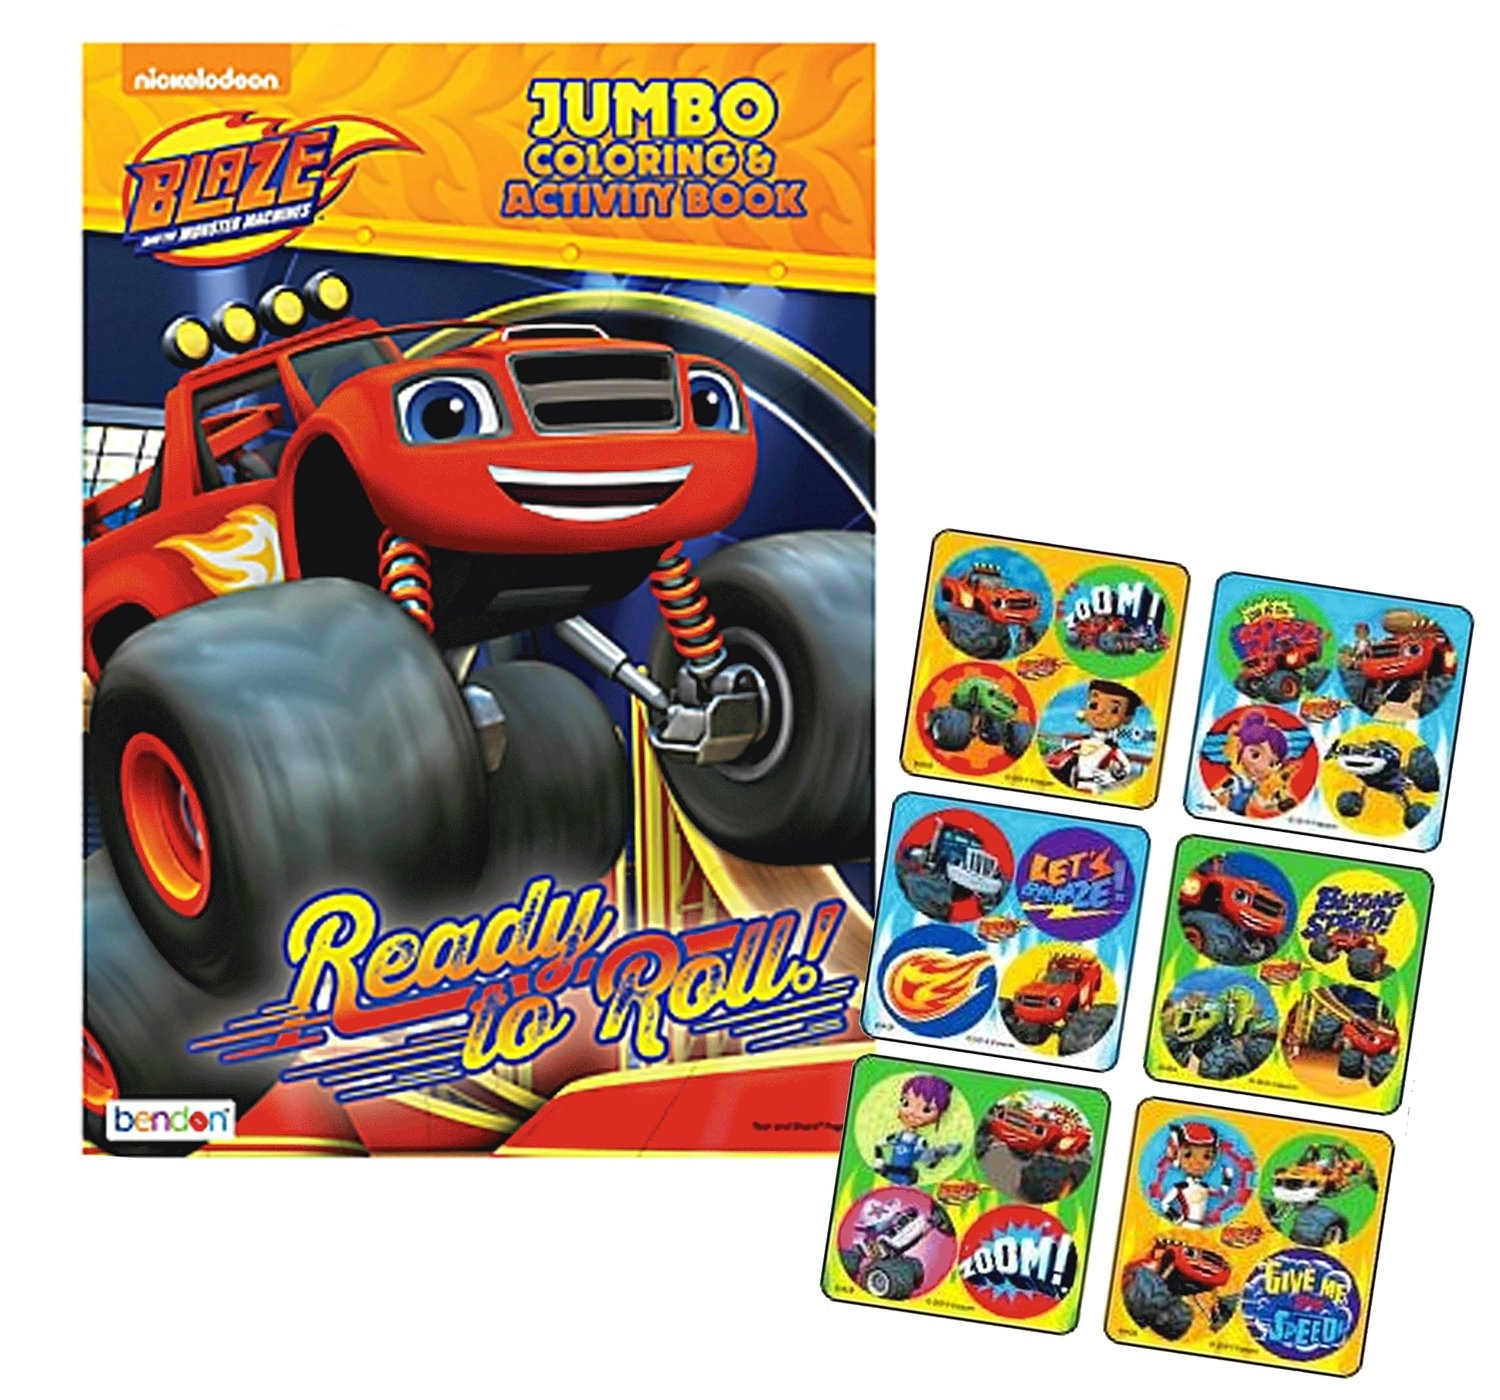 Nickelodeon-Blaze-and-the-Monster-Machines-034-Ready-To-Roll-034-Jumbo-Colouring-and